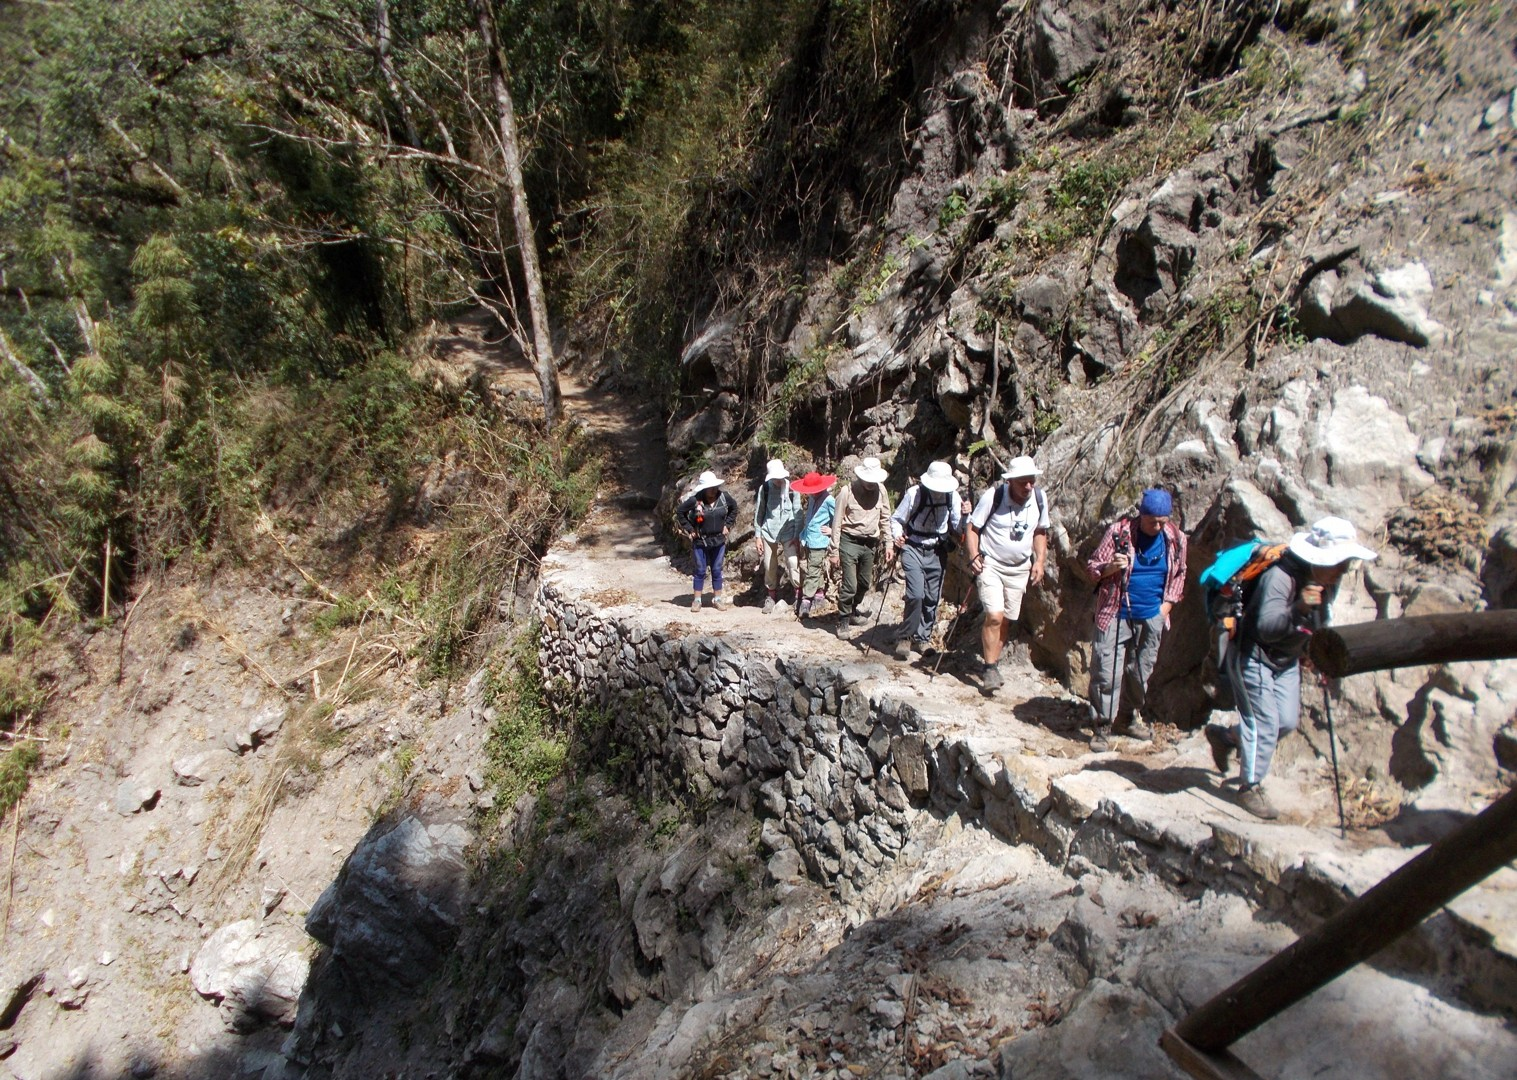 Inca Trails in Peru.jpg - Inca Trails in Peru - Meet the People Tours